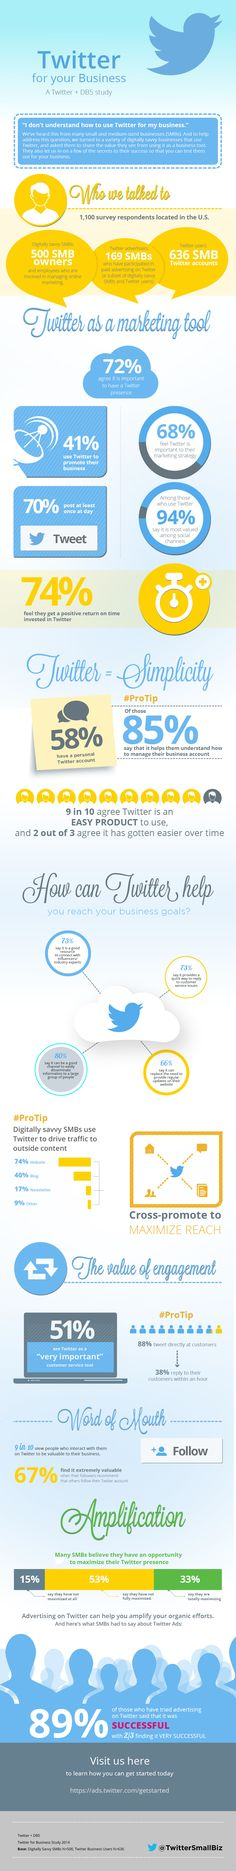 Infographic: How Twitter Shapes Your Business